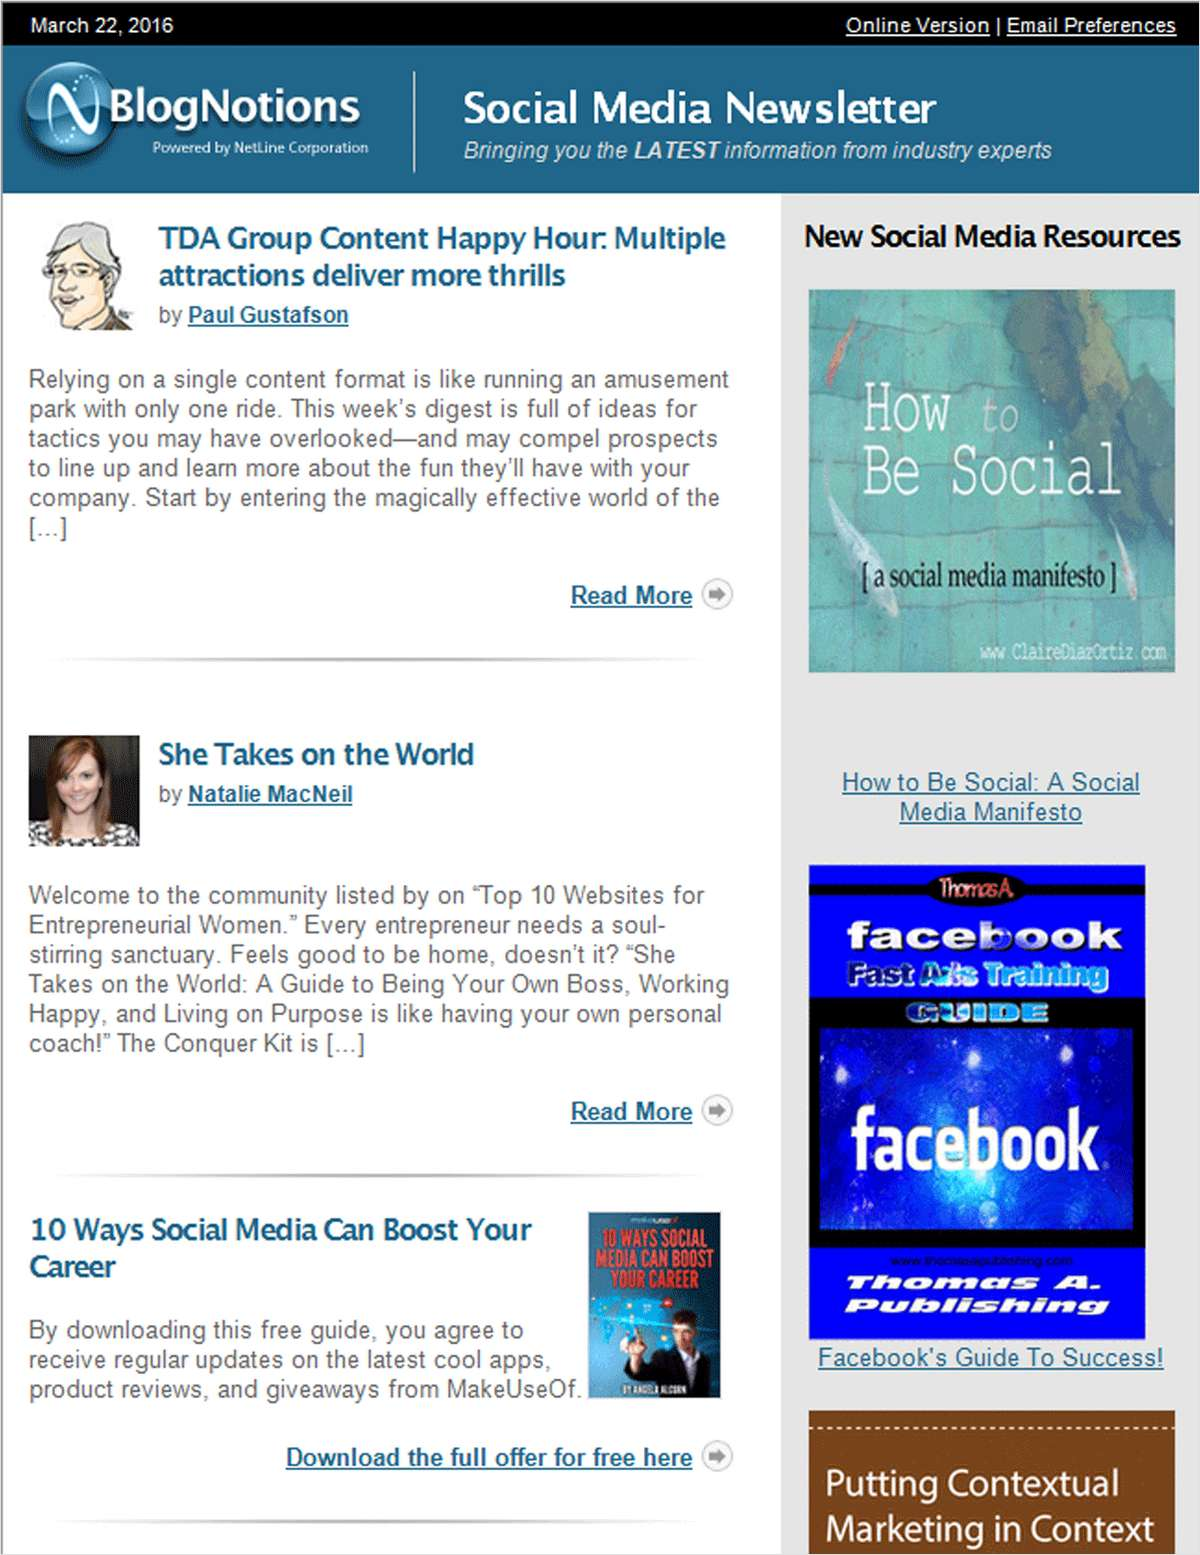 BlogNotions Social Media Newsletter: Monthly eNewsletter Featuring Blogs from Industry Experts